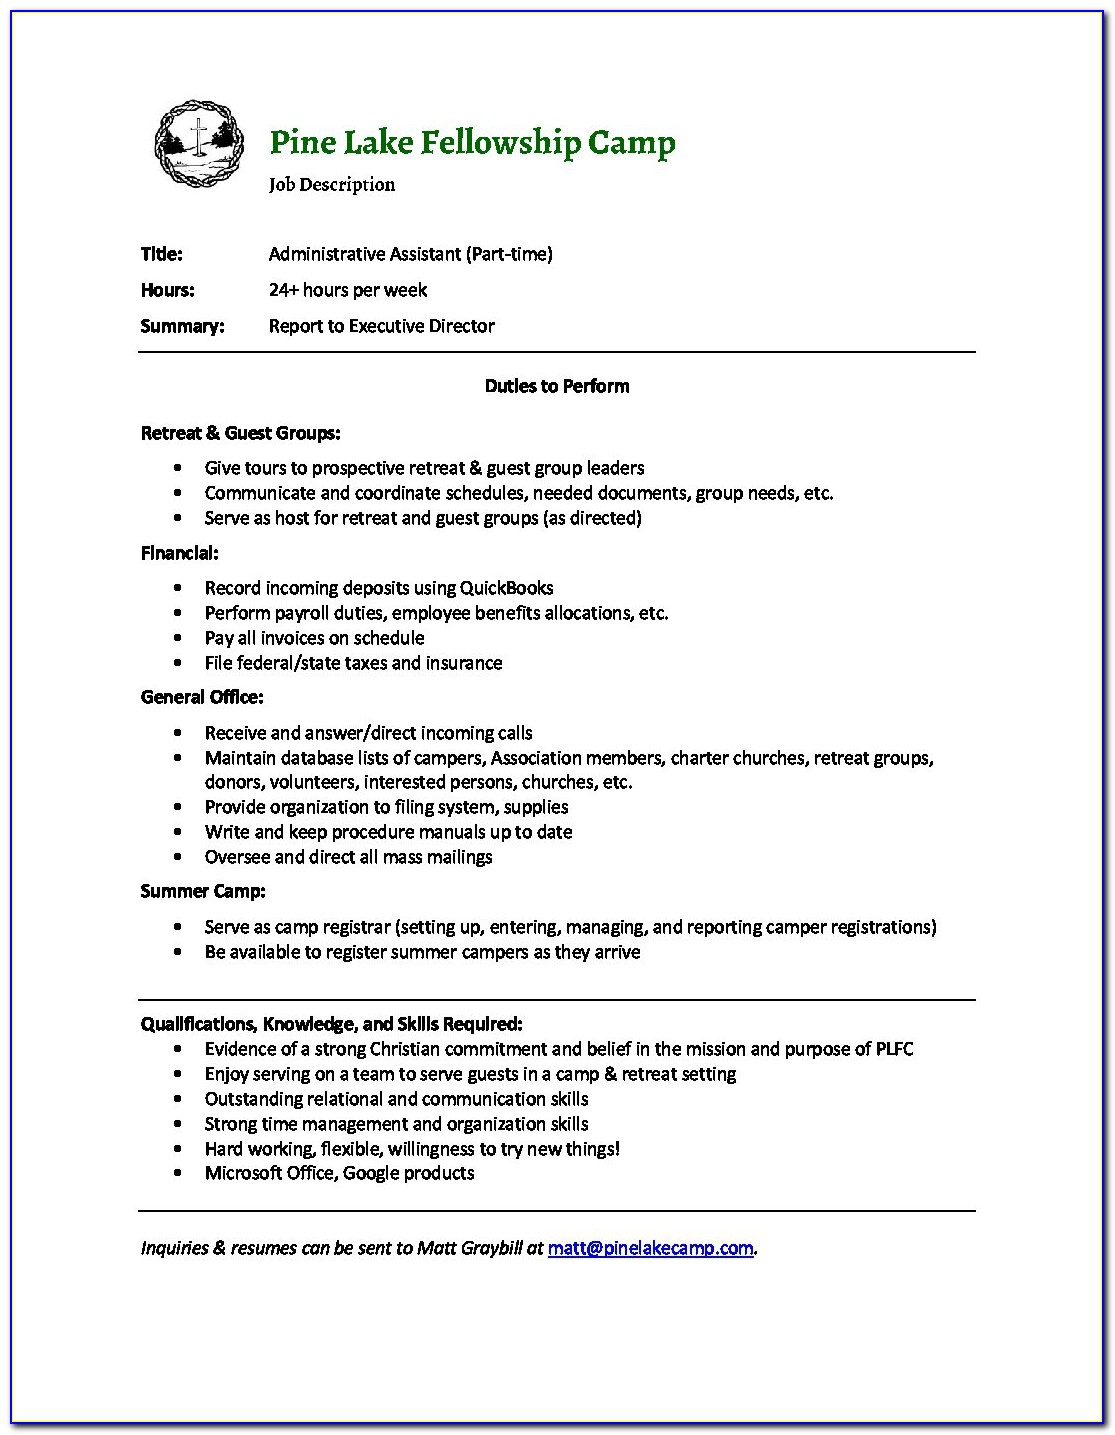 Job Descriptions For Administrative Assistants